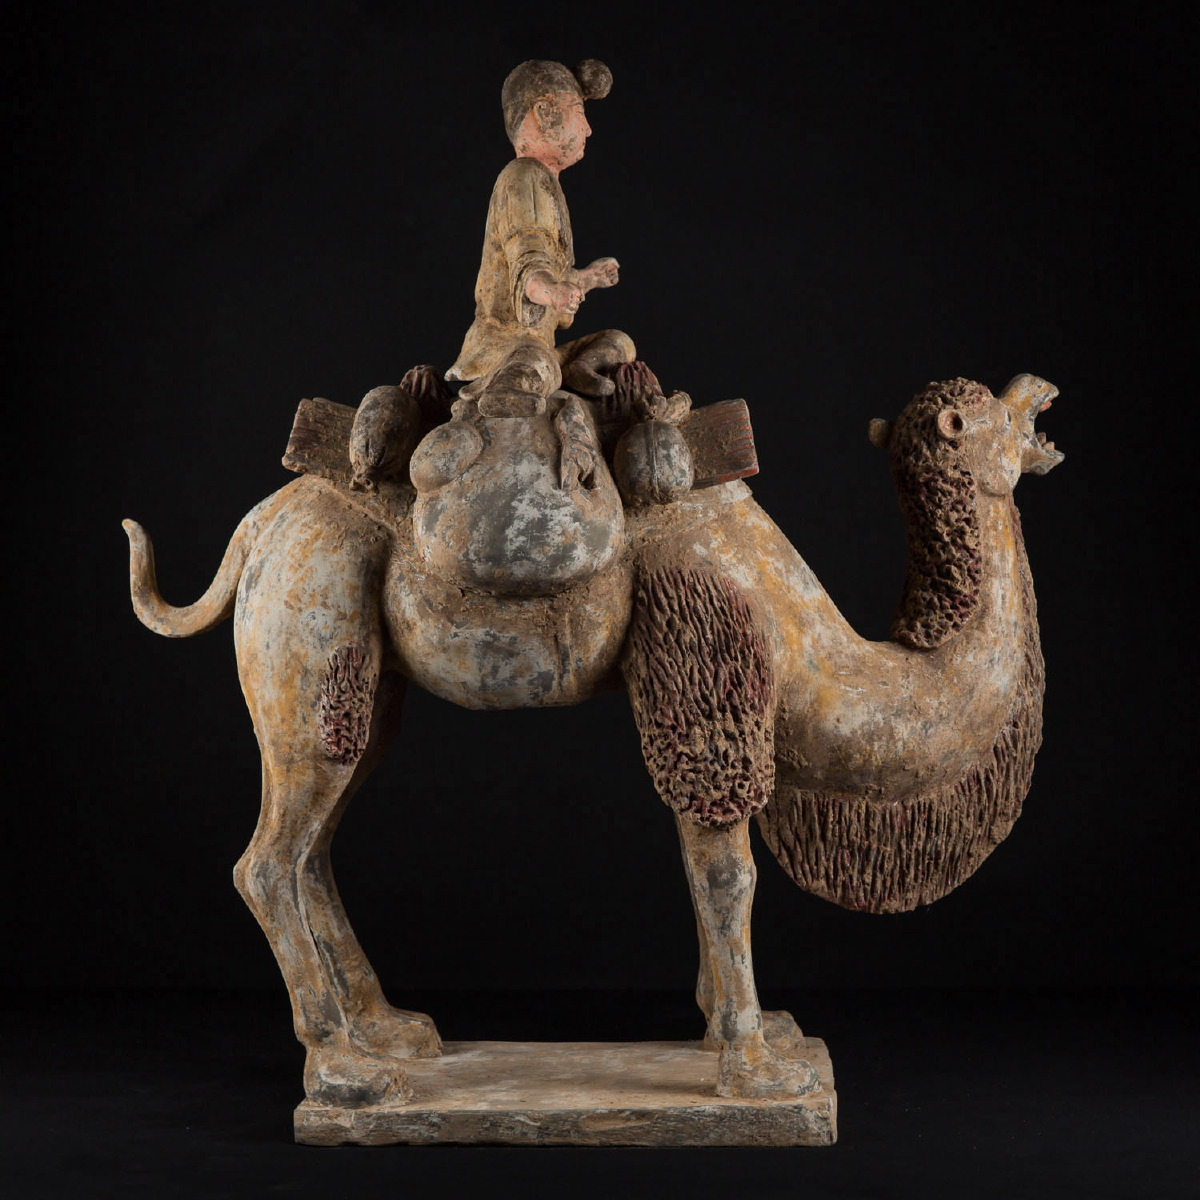 Photo of formidable-camel-tang-china-soddian-museum-quality-galerie-golconda